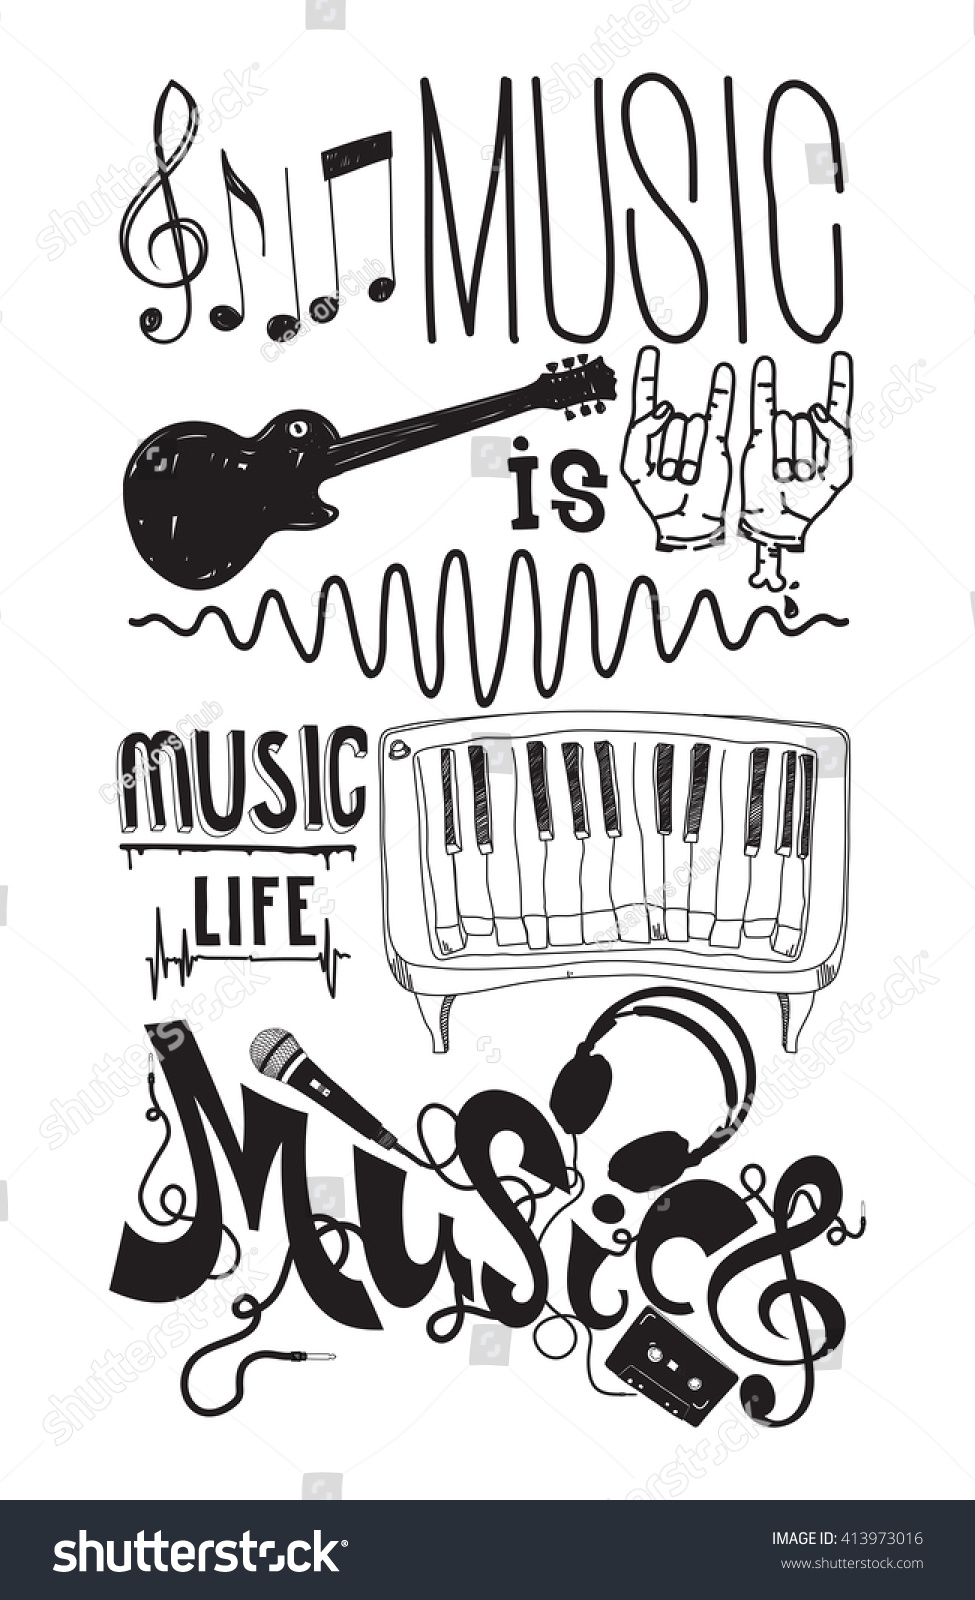 Stock vector music hand lettering and doodles elements - Music Is Life Prefect Set With Isolated Doodle Music Instruments Quote Hand Drawing